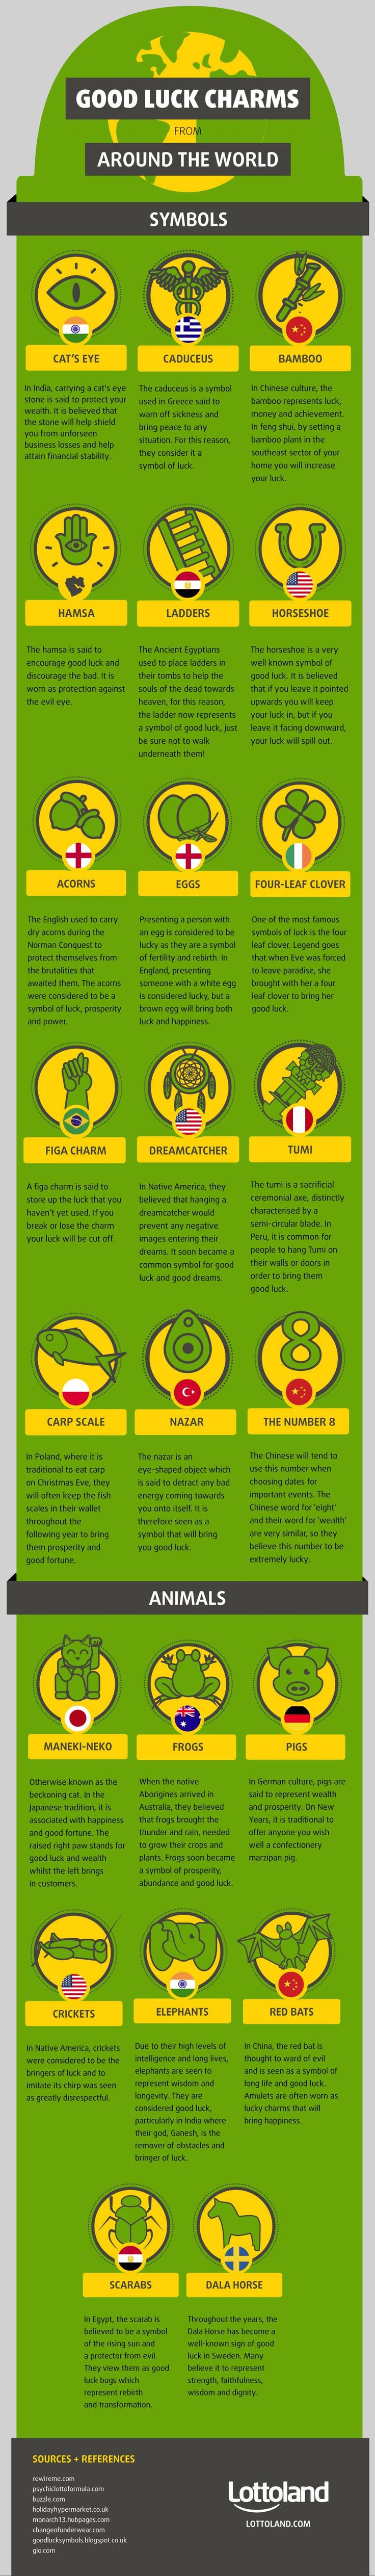 Good Luck Charms From Around The World #infographic #Travel #GoodLuckCharms